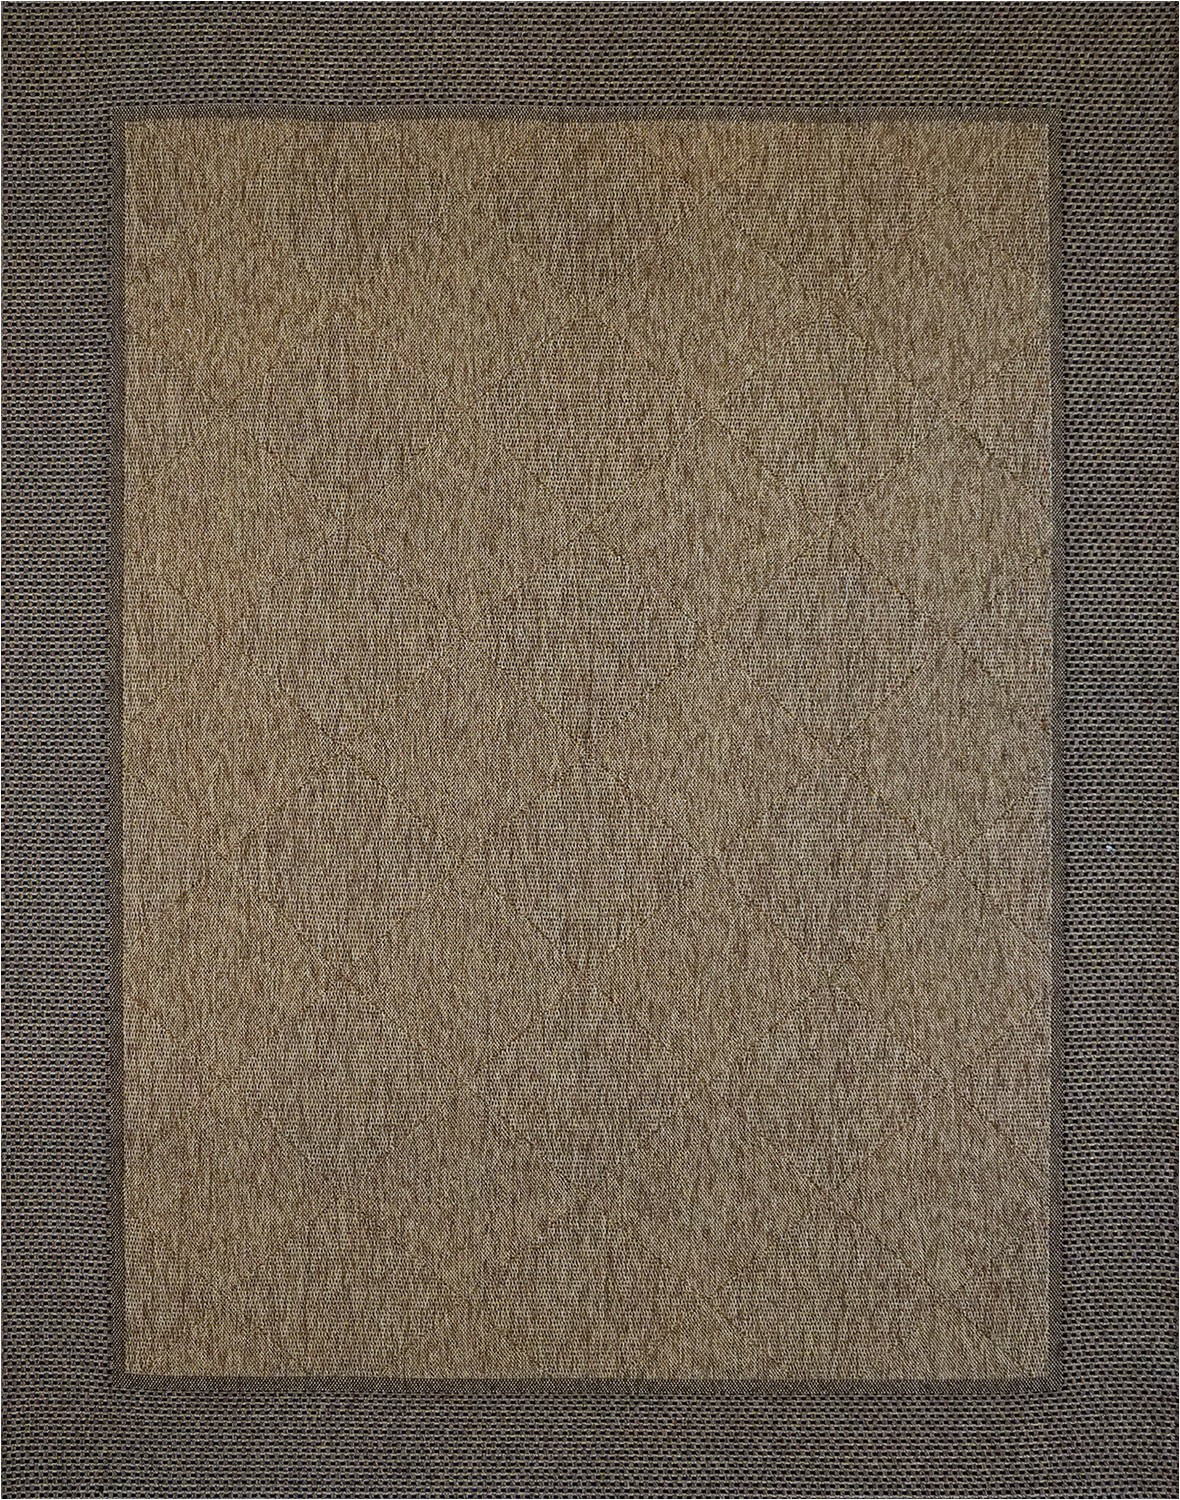 Outdoor 8 X 10 area Rugs Megalo Collection Chestnut Black Rug 8x10